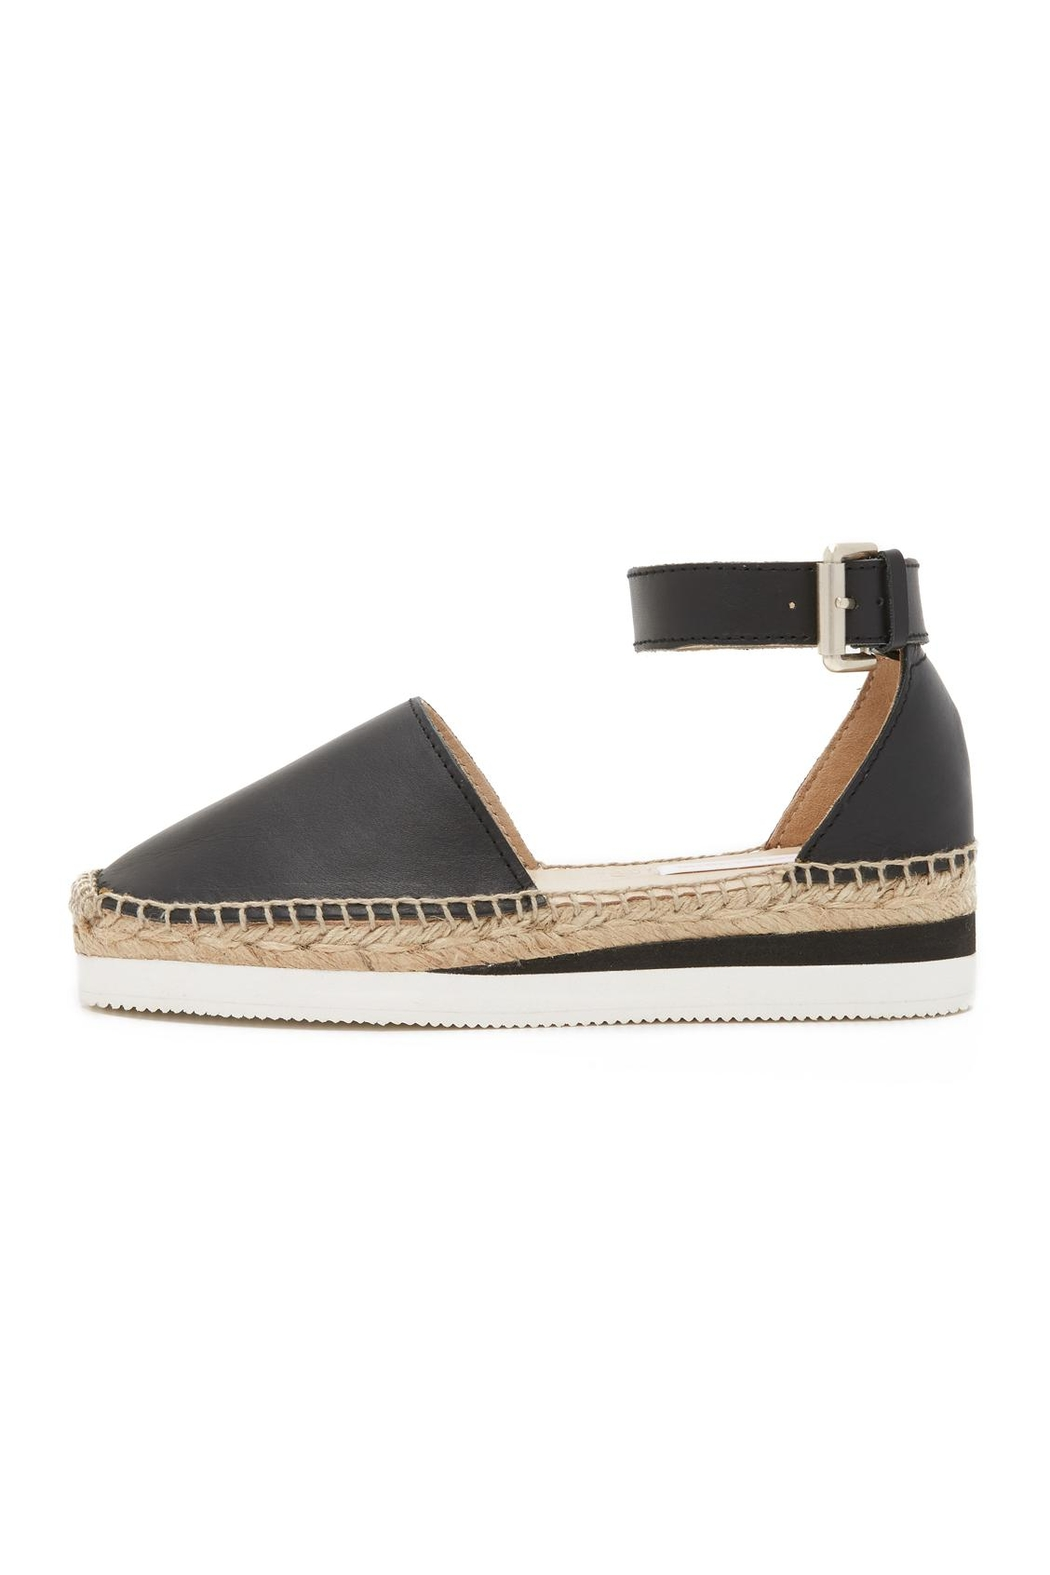 b2f5676f66 See By Chloe Glyn Espadrille Black from Sydney by White Paire ...